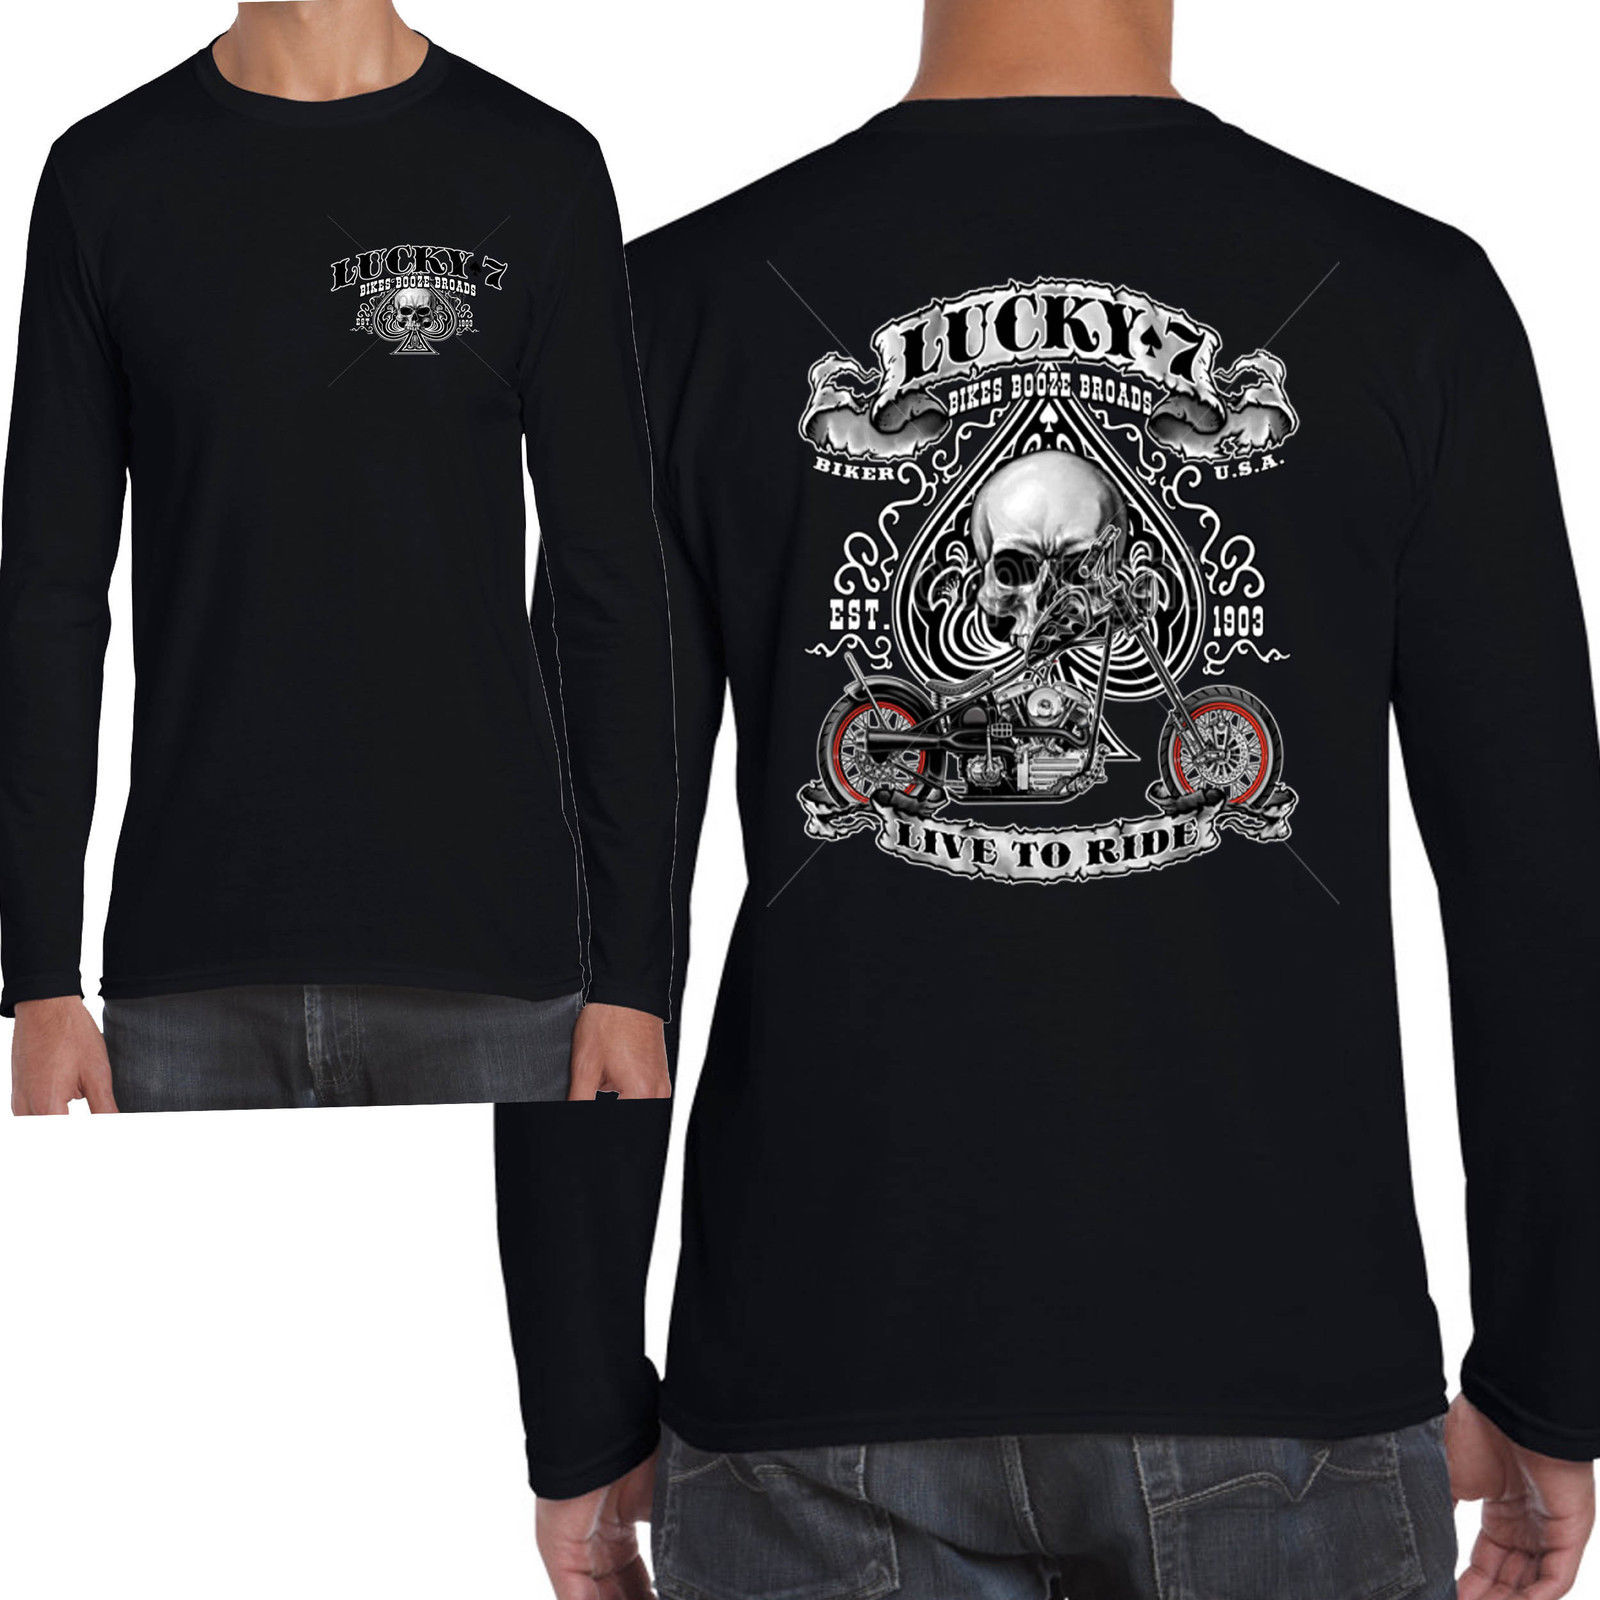 Motorcycle T Shirts Near Me Chad Crowley Productions